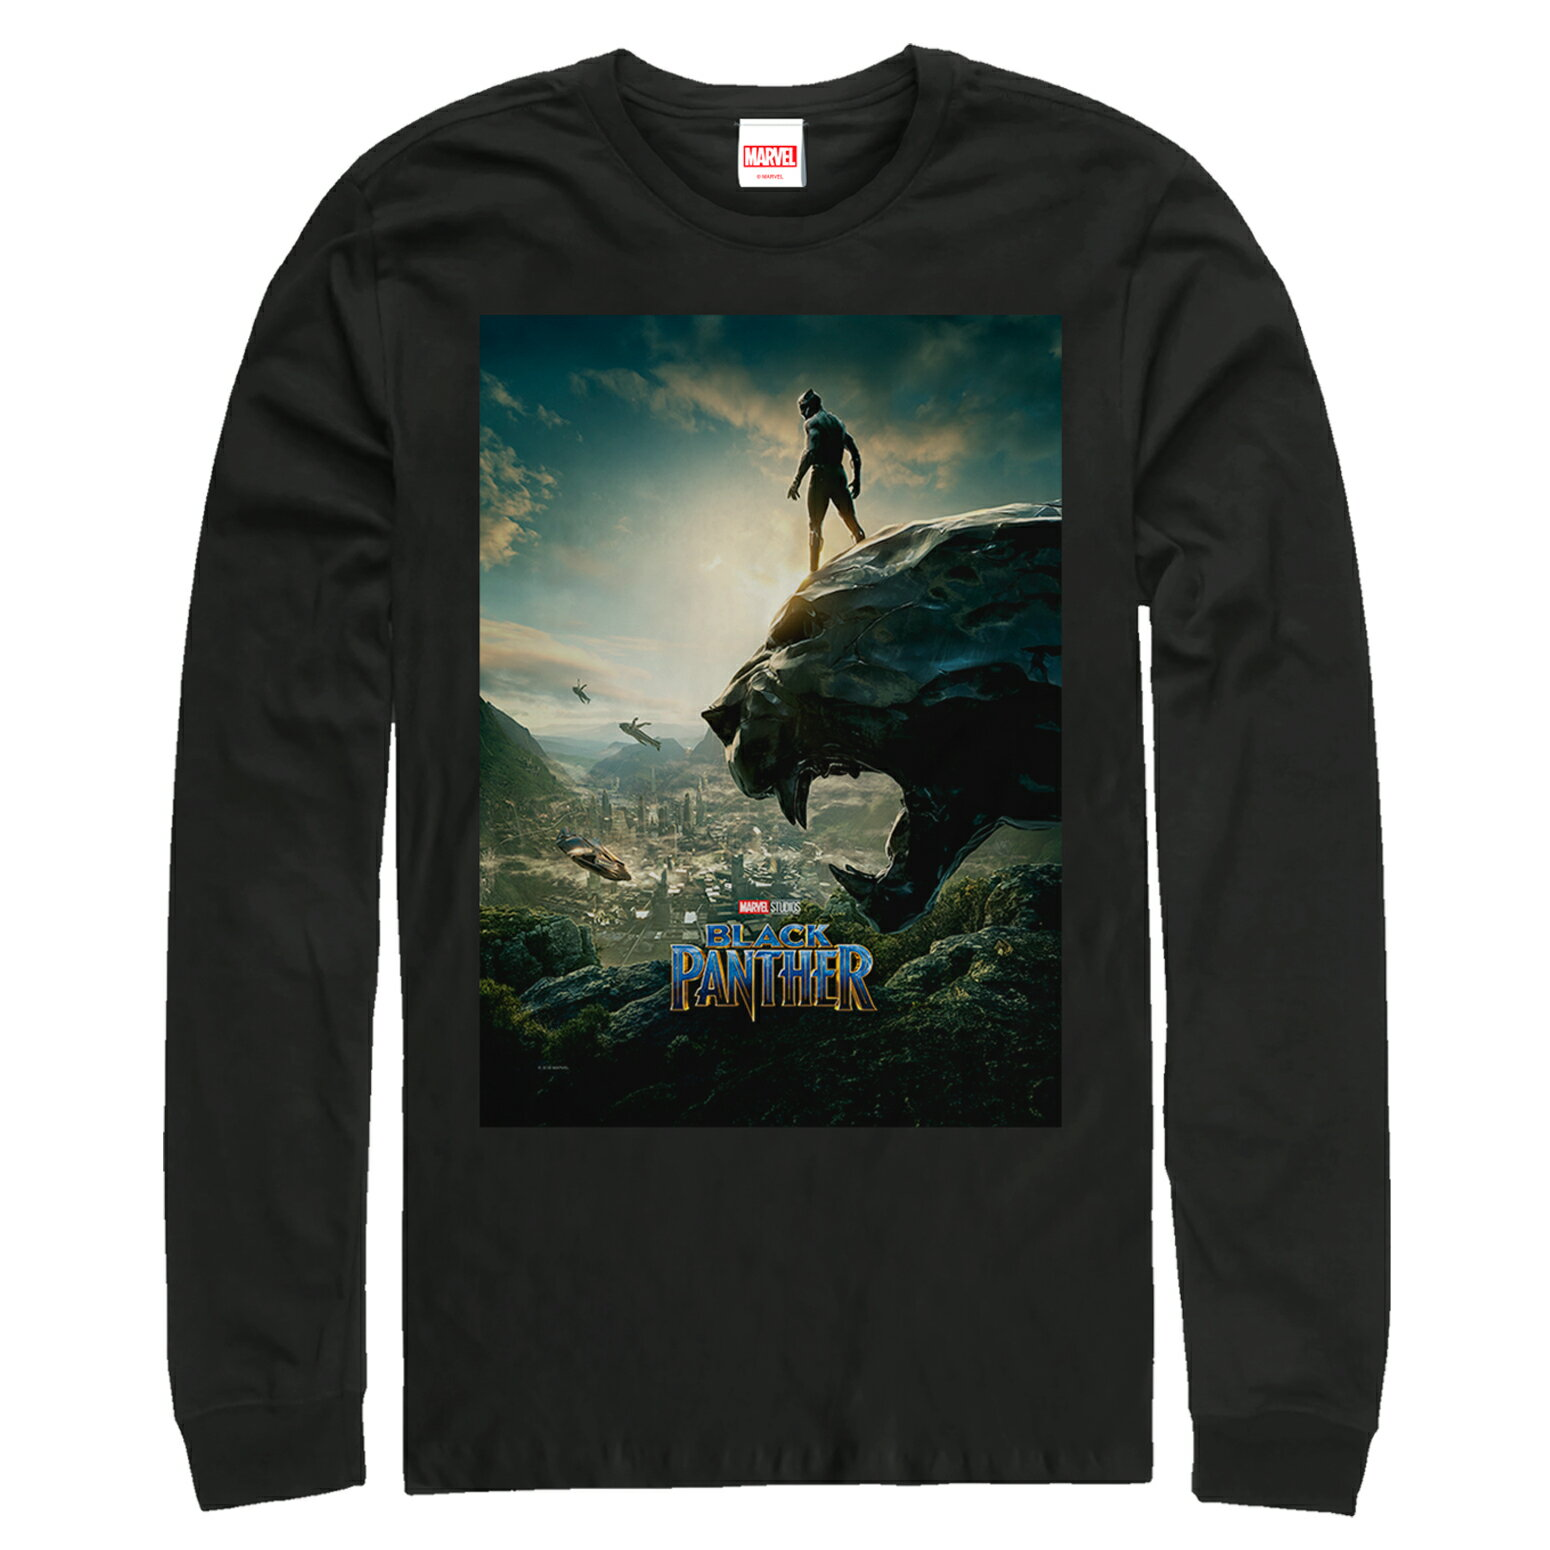 39184249a1e Marvel Black Panther 2018 Epic View Mens Graphic Long Sleeve Shirt 0